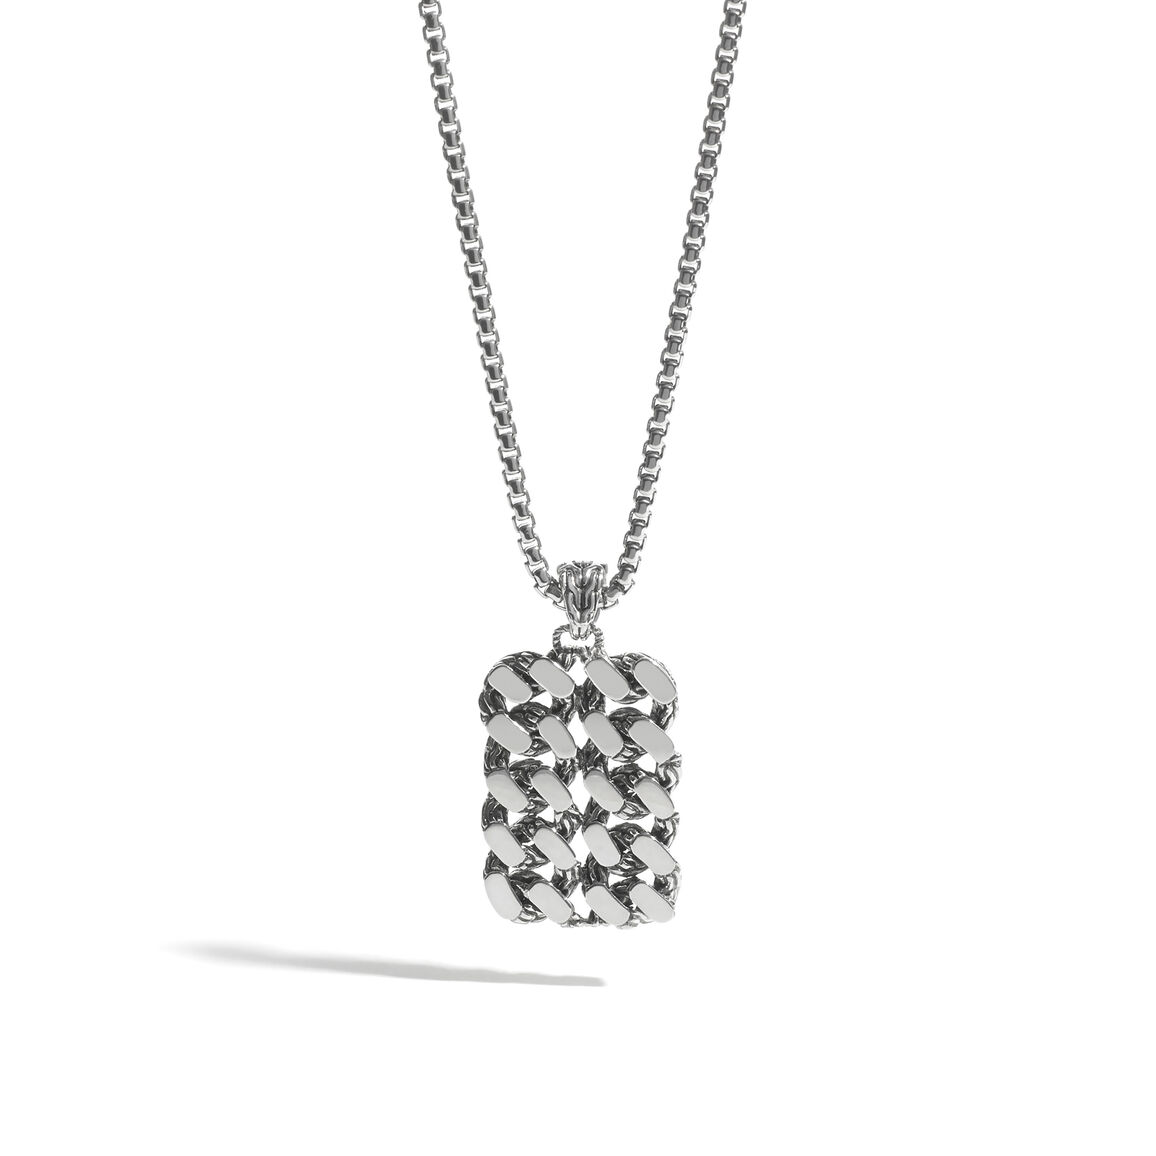 Classic Chain Dog Tag Necklace in Silver